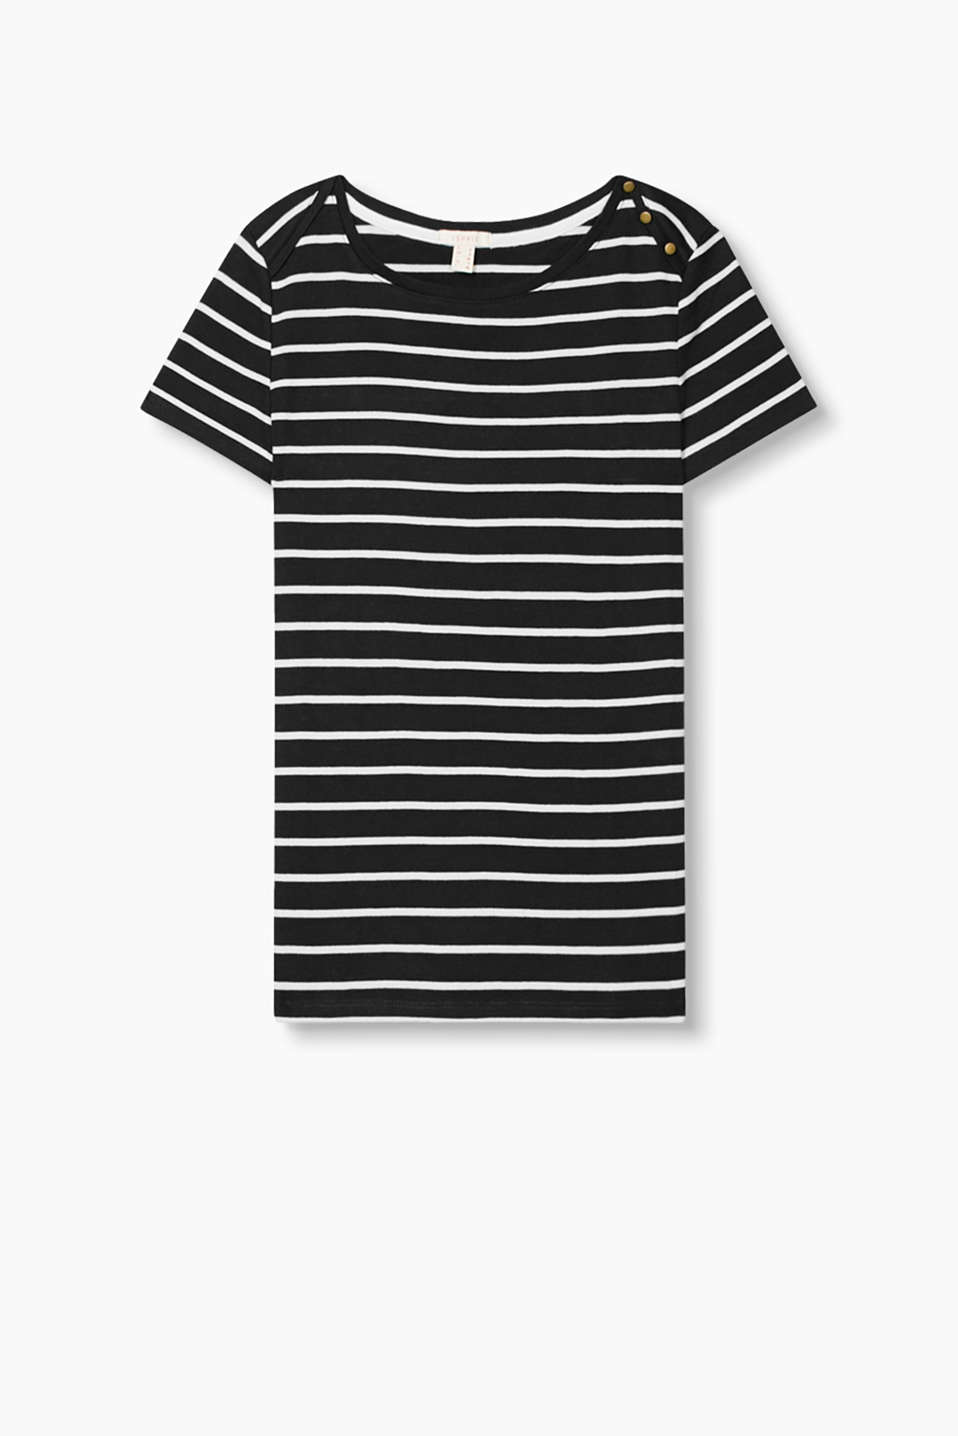 This nautical, striped cotton T-shirt with a bateau neckline and shoulder buttons is a perfect essential!